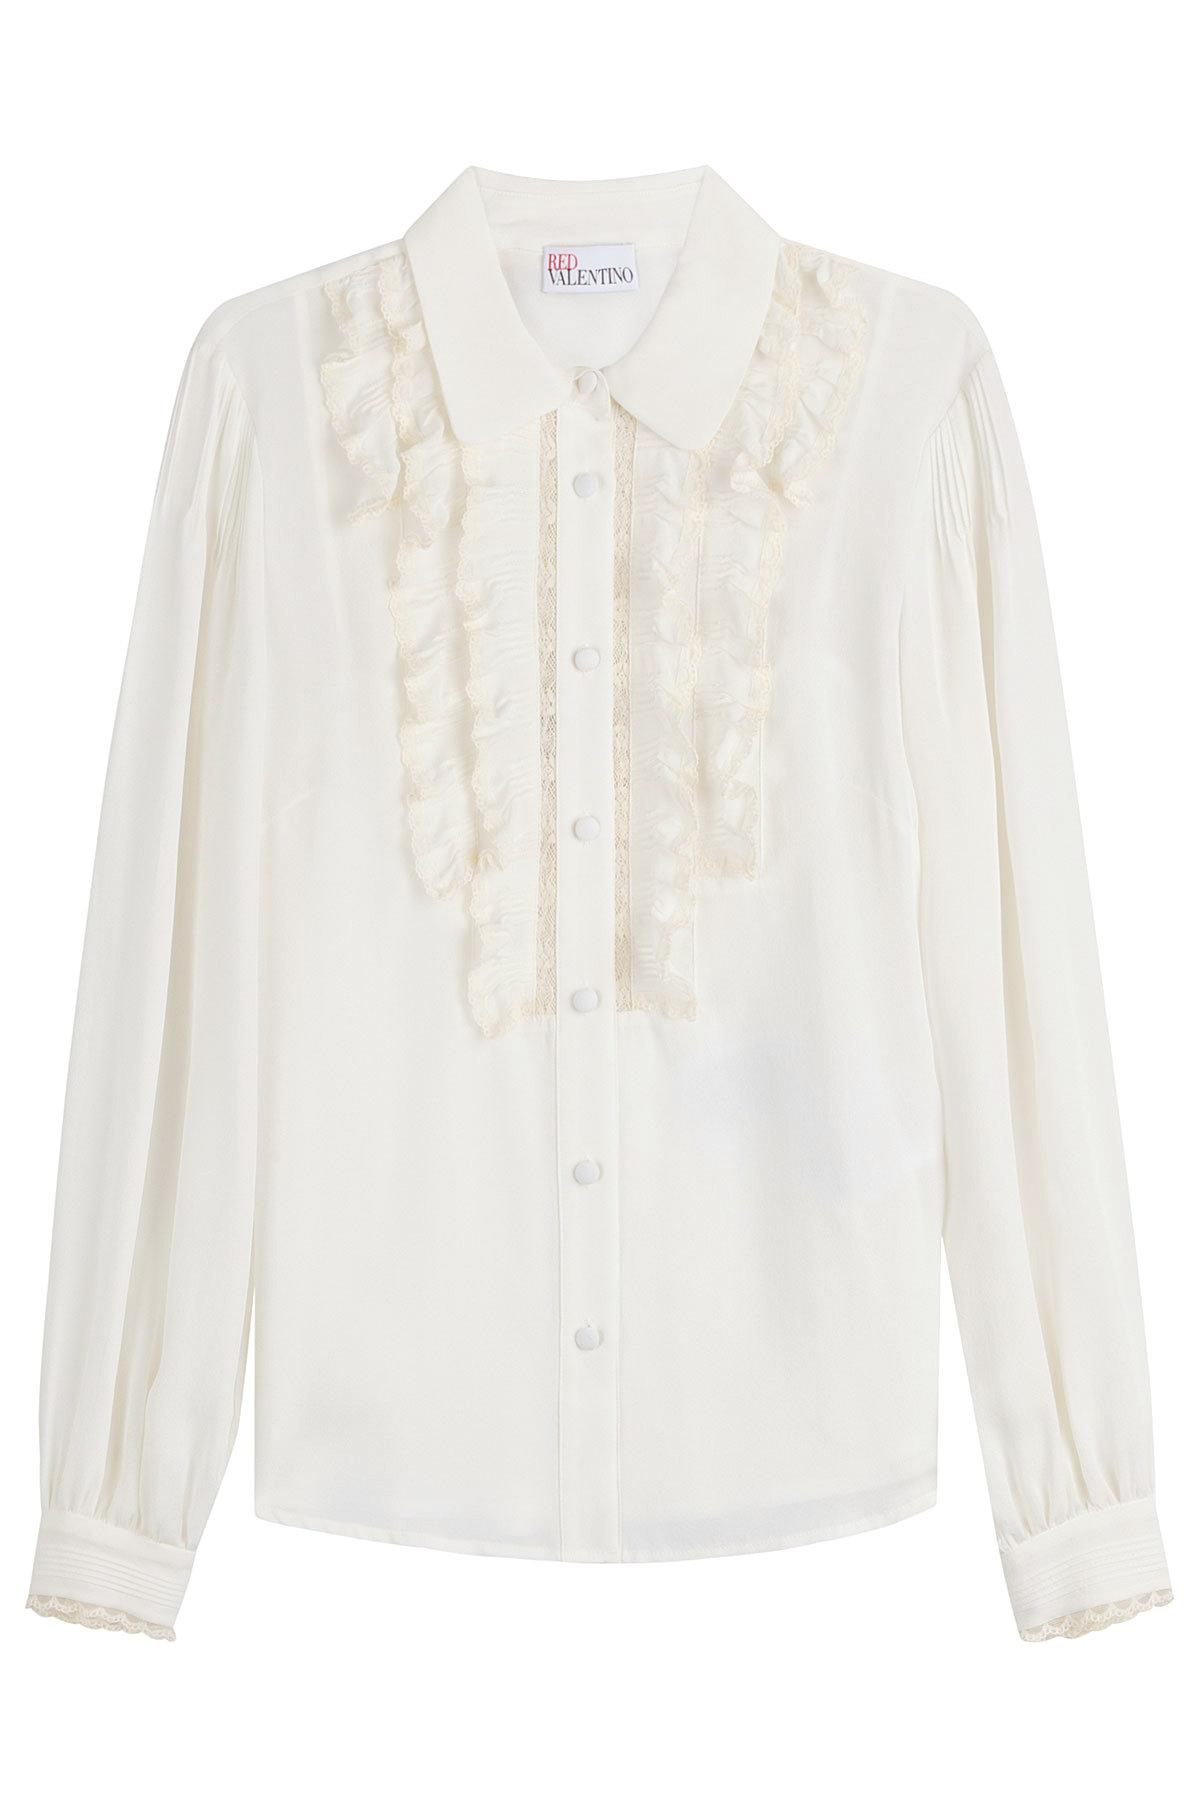 Valentino Woman Lace-trimmed Pleated Silk Crepe De Chine Blouse Cream Size 40 Valentino Geniue Stockist Cheap Price Clearance Marketable N3zOxi1Uc